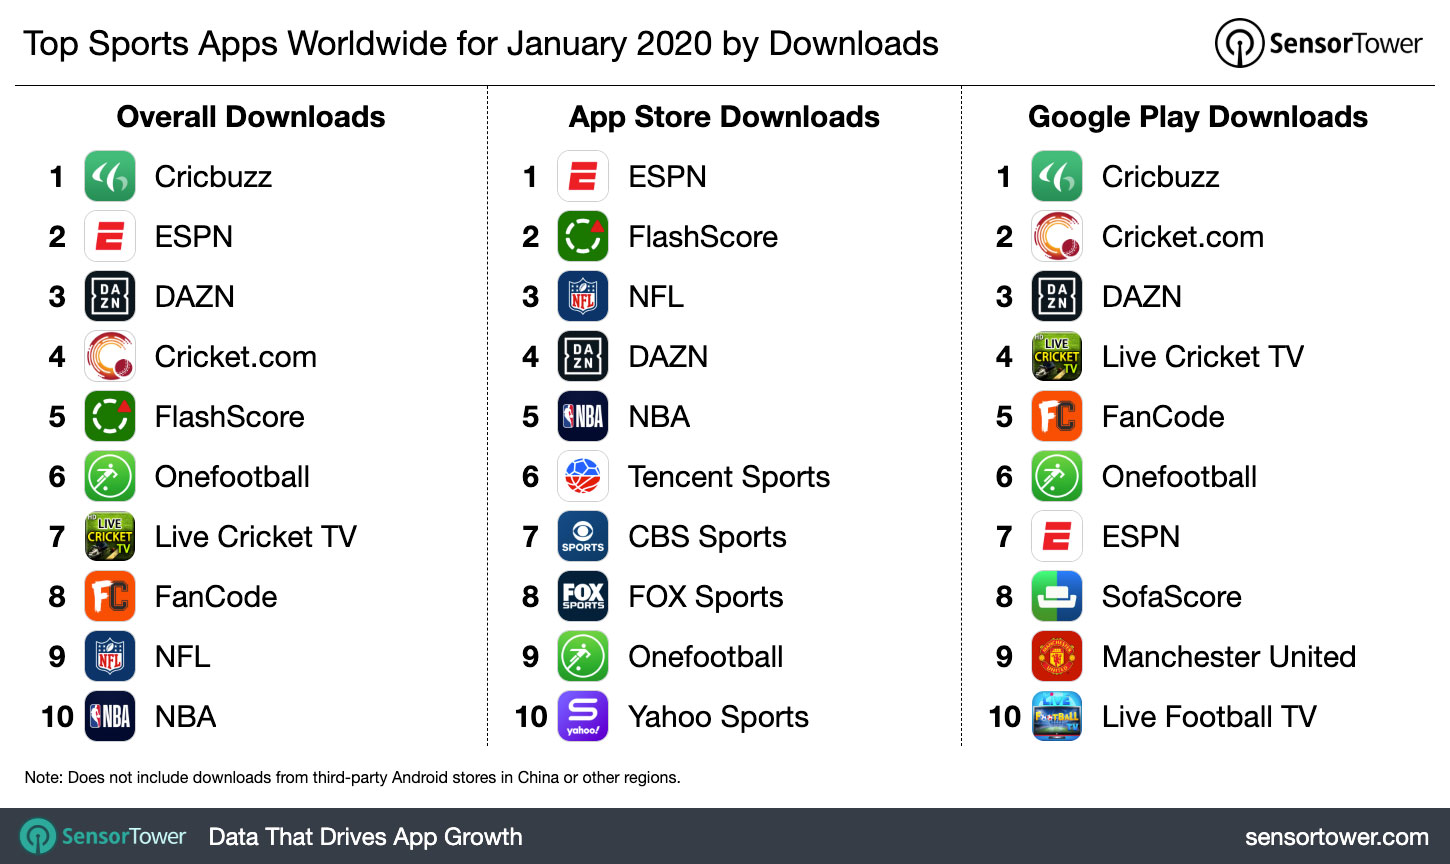 Top Sports Apps Worldwide For January 2020 By Downloads